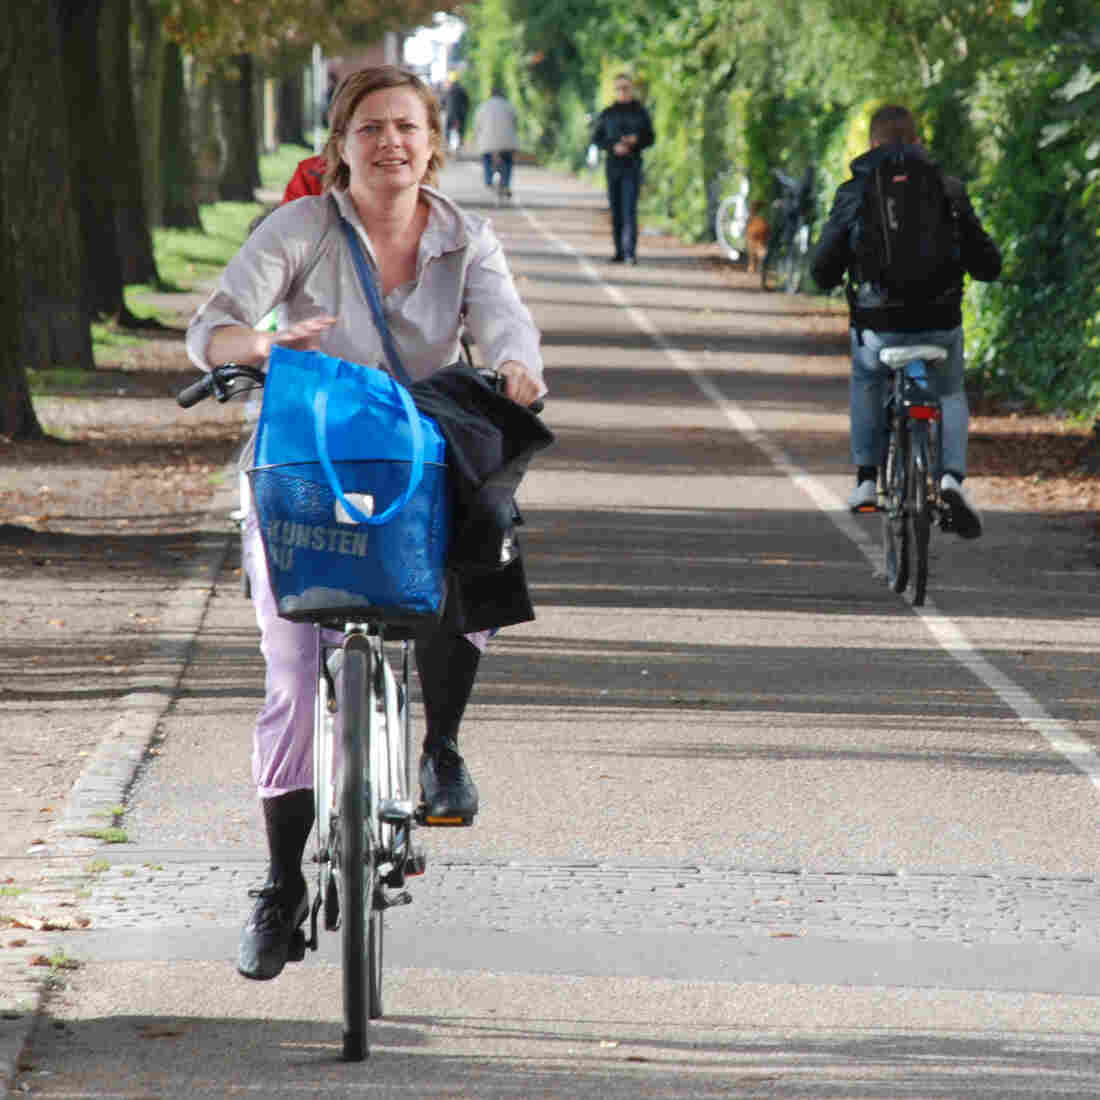 Many Copenhagen residents already travel by bike, and now the city is building high-speed routes designed to encourage commuters even in the outlying suburbs.